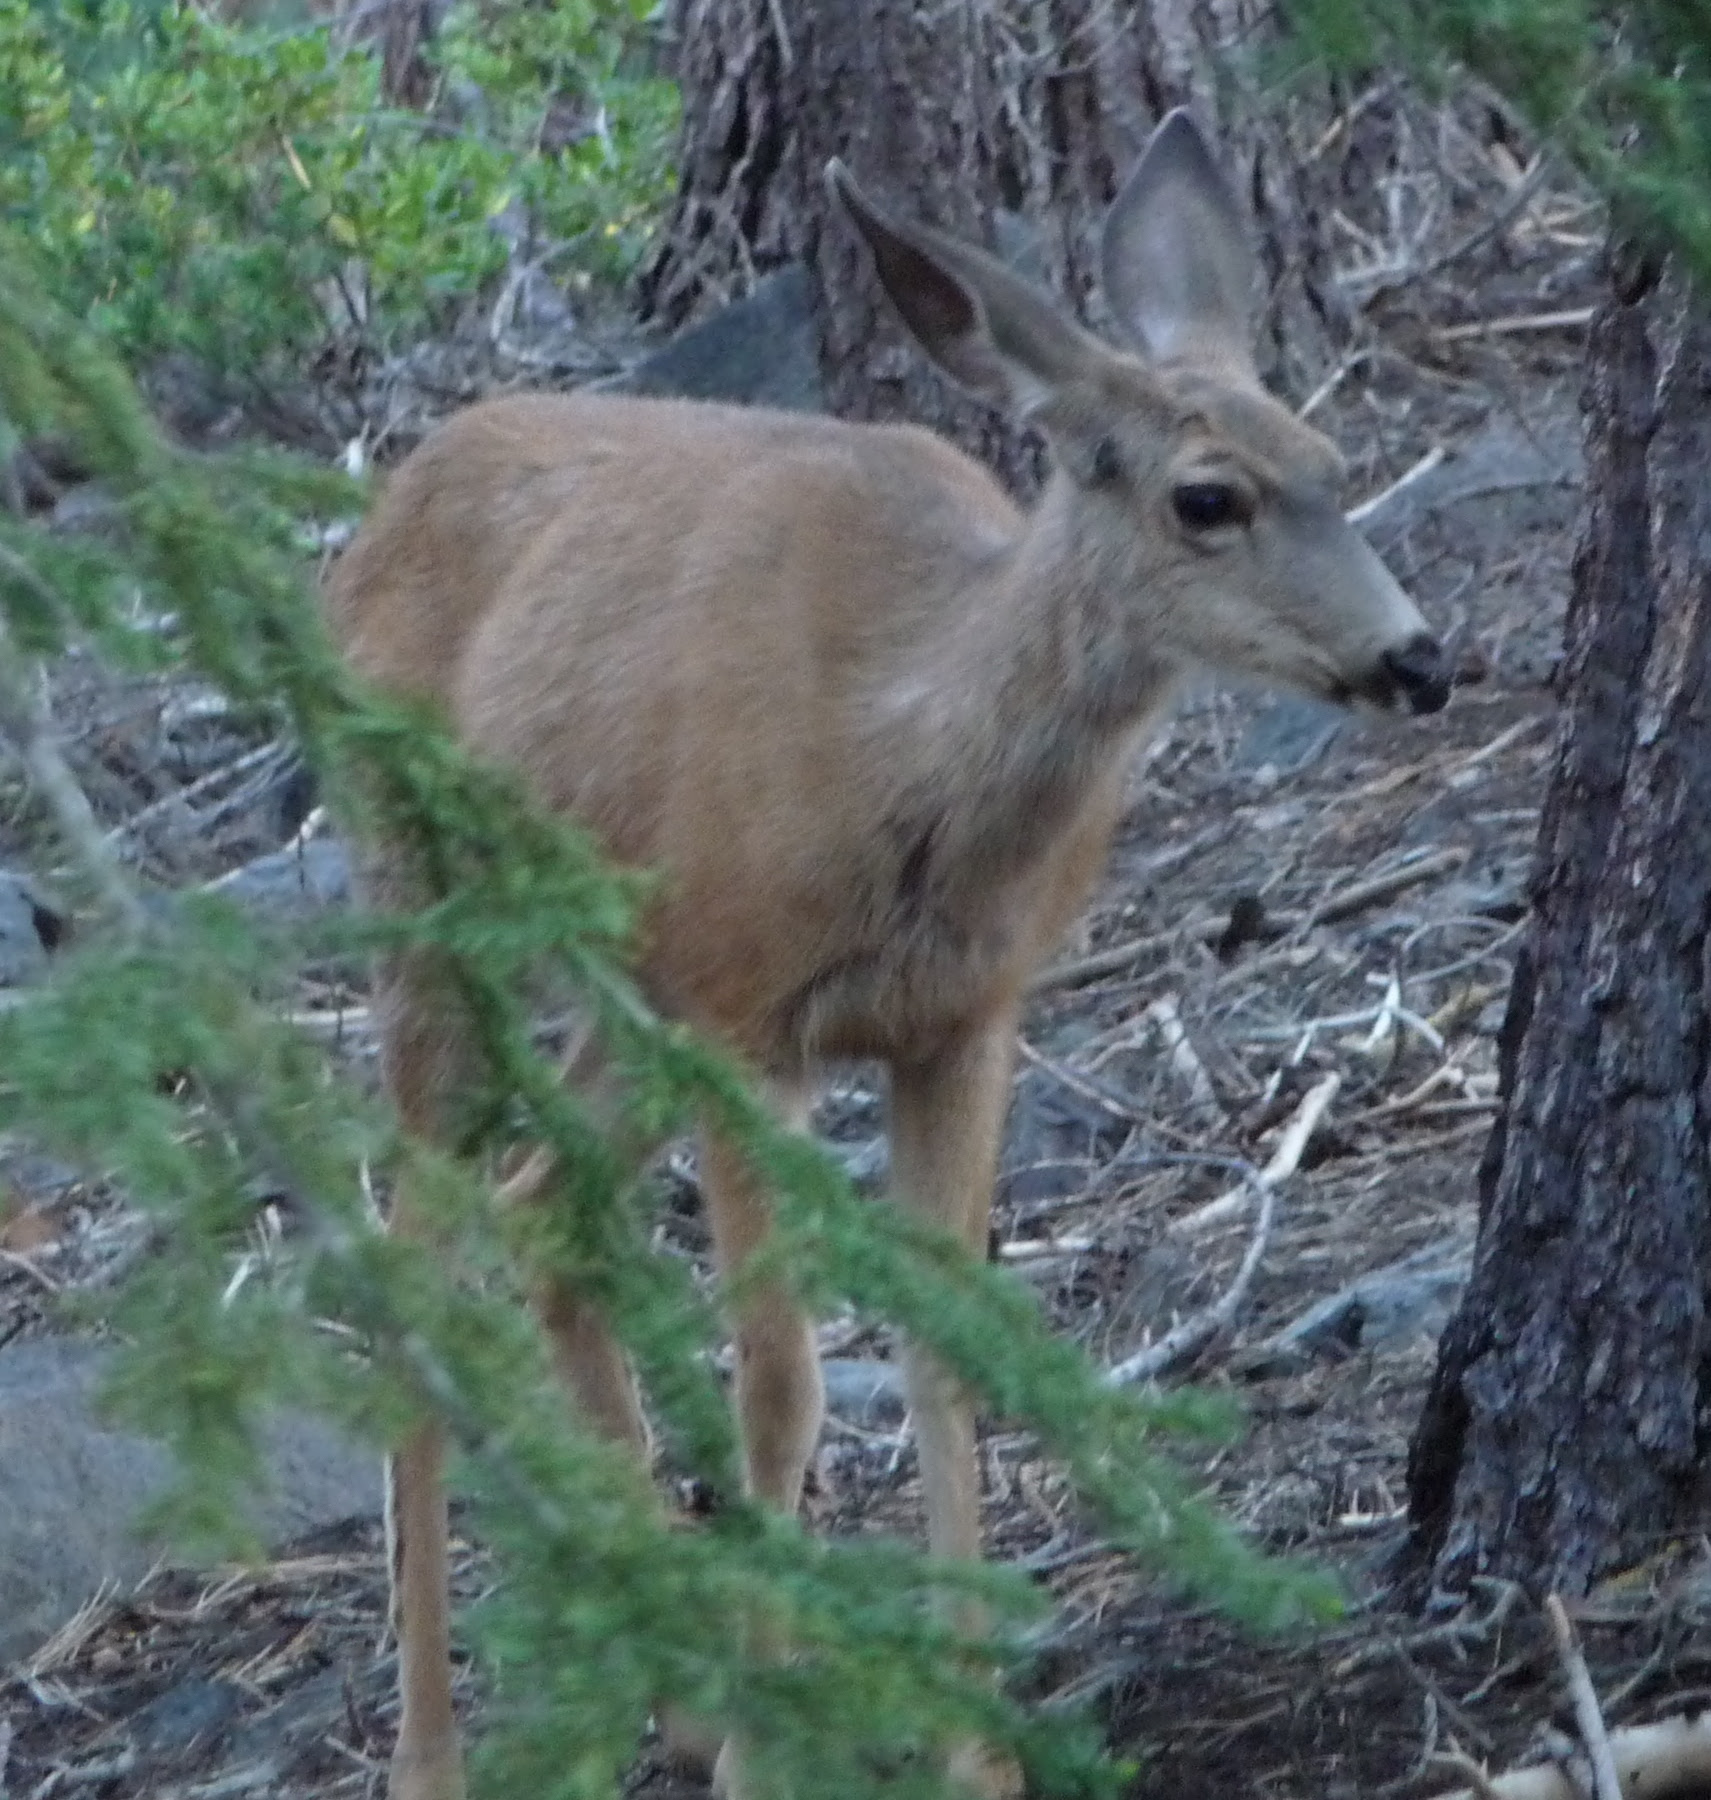 http://upload.wikimedia.org/wikipedia/commons/1/11/Inyo_Crater_Lakes_-_Mule_Deer_nearby.JPG